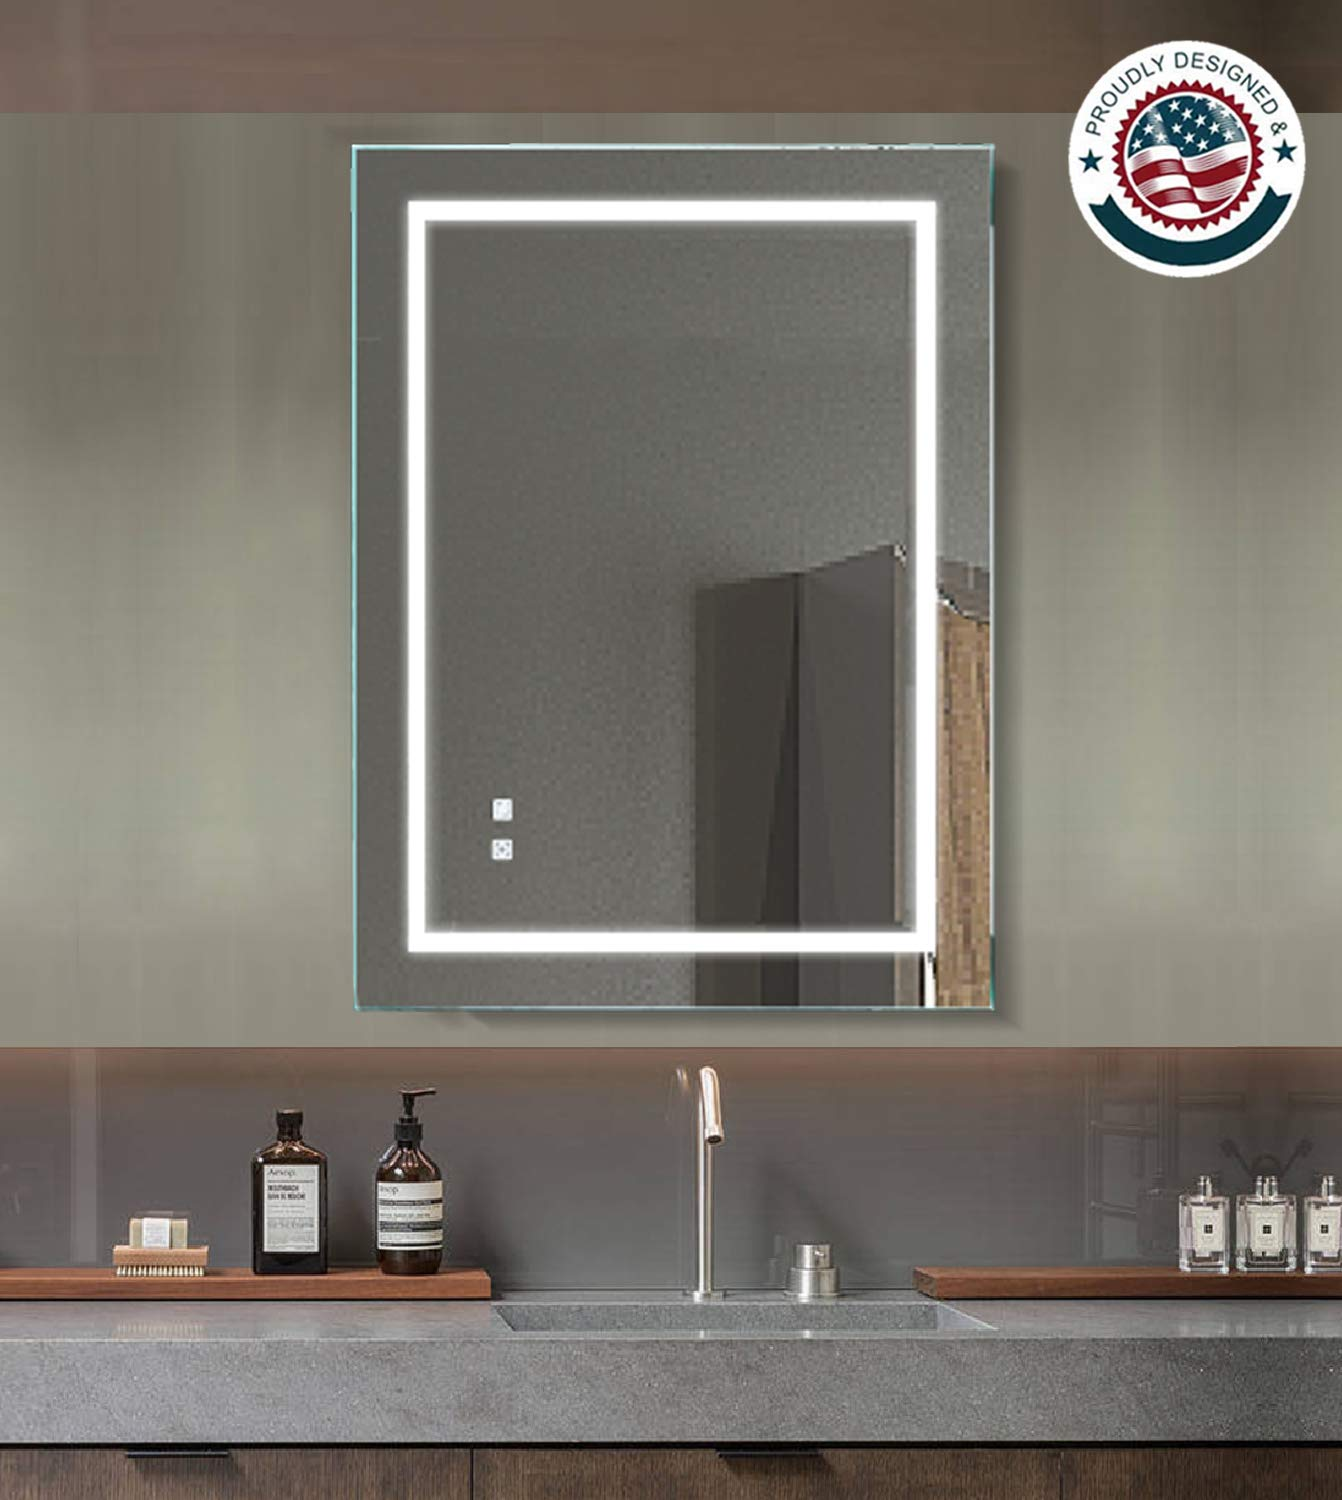 ExBrite LED Lighted Bathroom Mirror, 36 x 28 inch, Wall Mounted Illuminated Mirror, Anti fog, Dimmable, Touch Button, Slim, 90+ CRI, ETL listed, Both Vertical & Horizontal Mounted Way by ExBrite